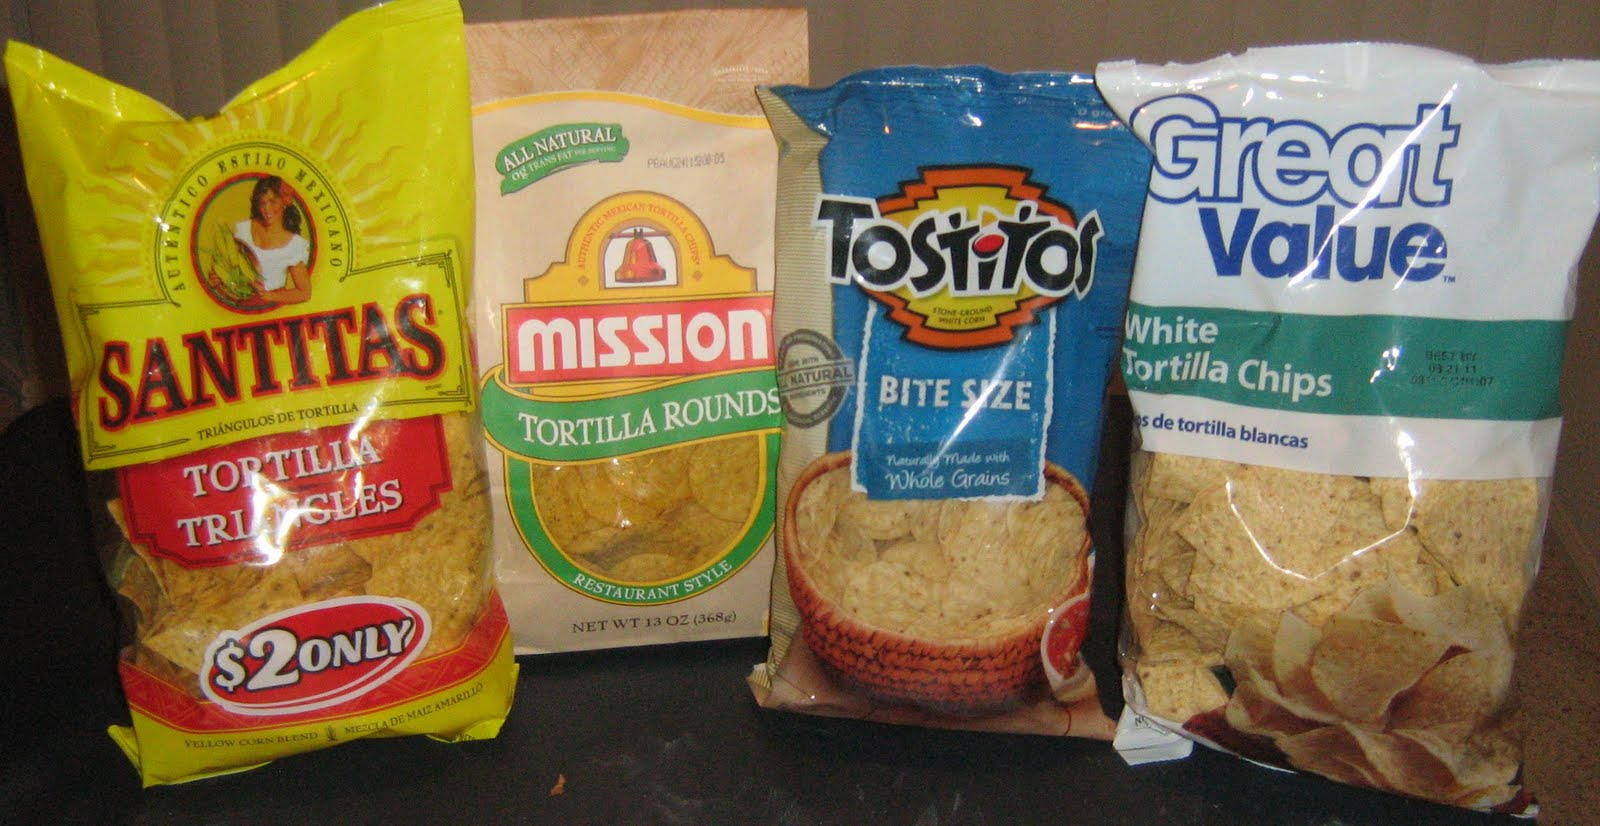 Do you have a favorite brand of tortilla chips?